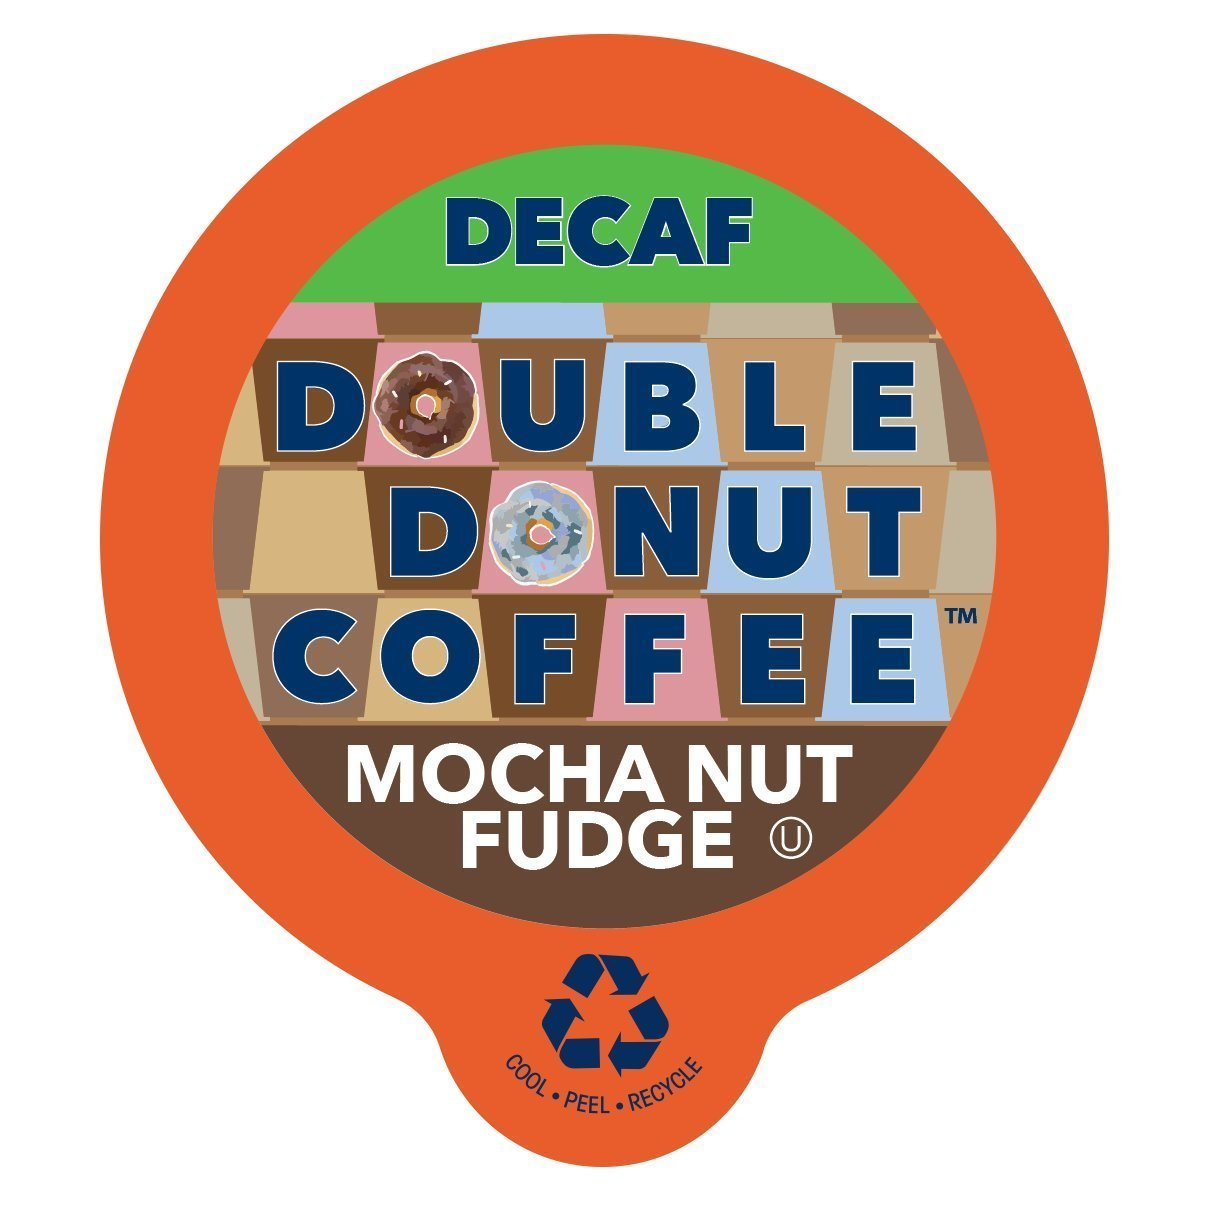 Mocha Nut Fudge Medium Roast Flavored Decaf Coffee Pods for Keurig K-Cup Makers from Double Donut, 96 Capsules